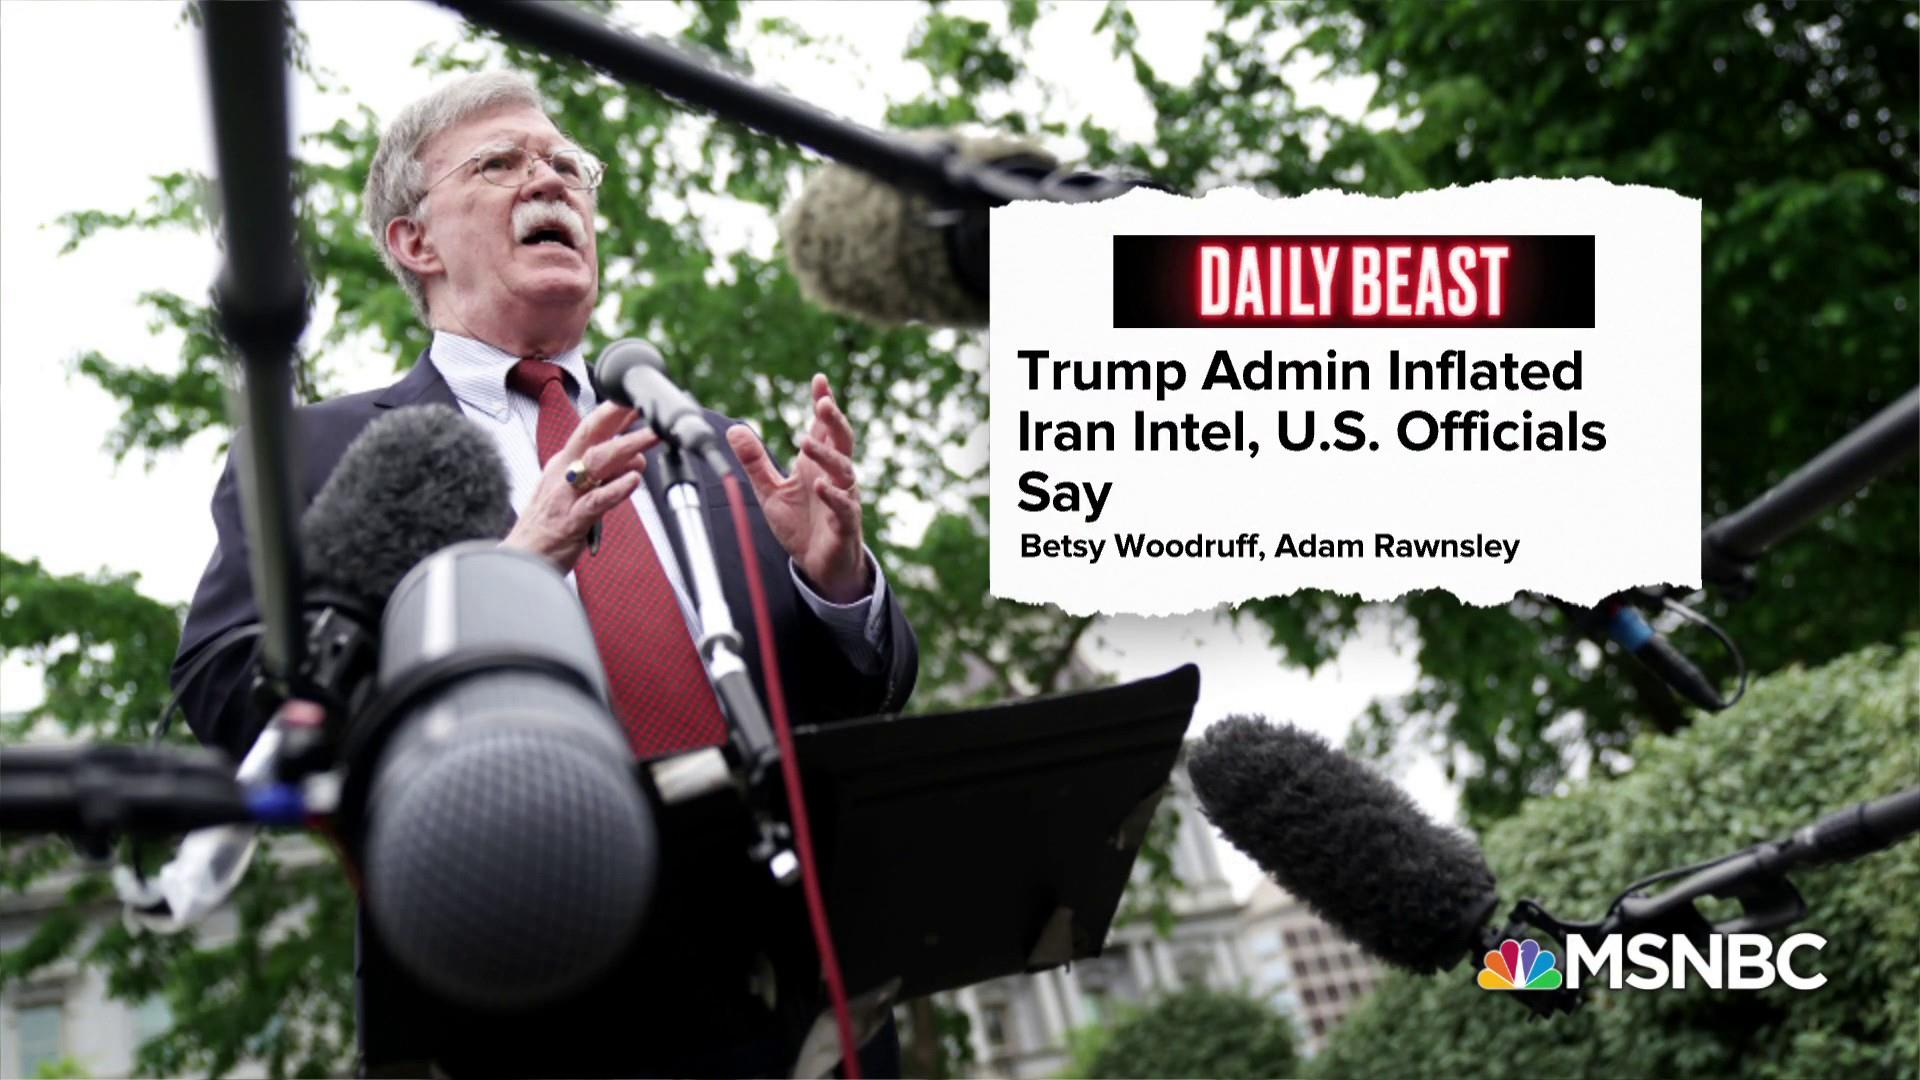 Daily Beast: Trump Administration inflating Iran intelligence